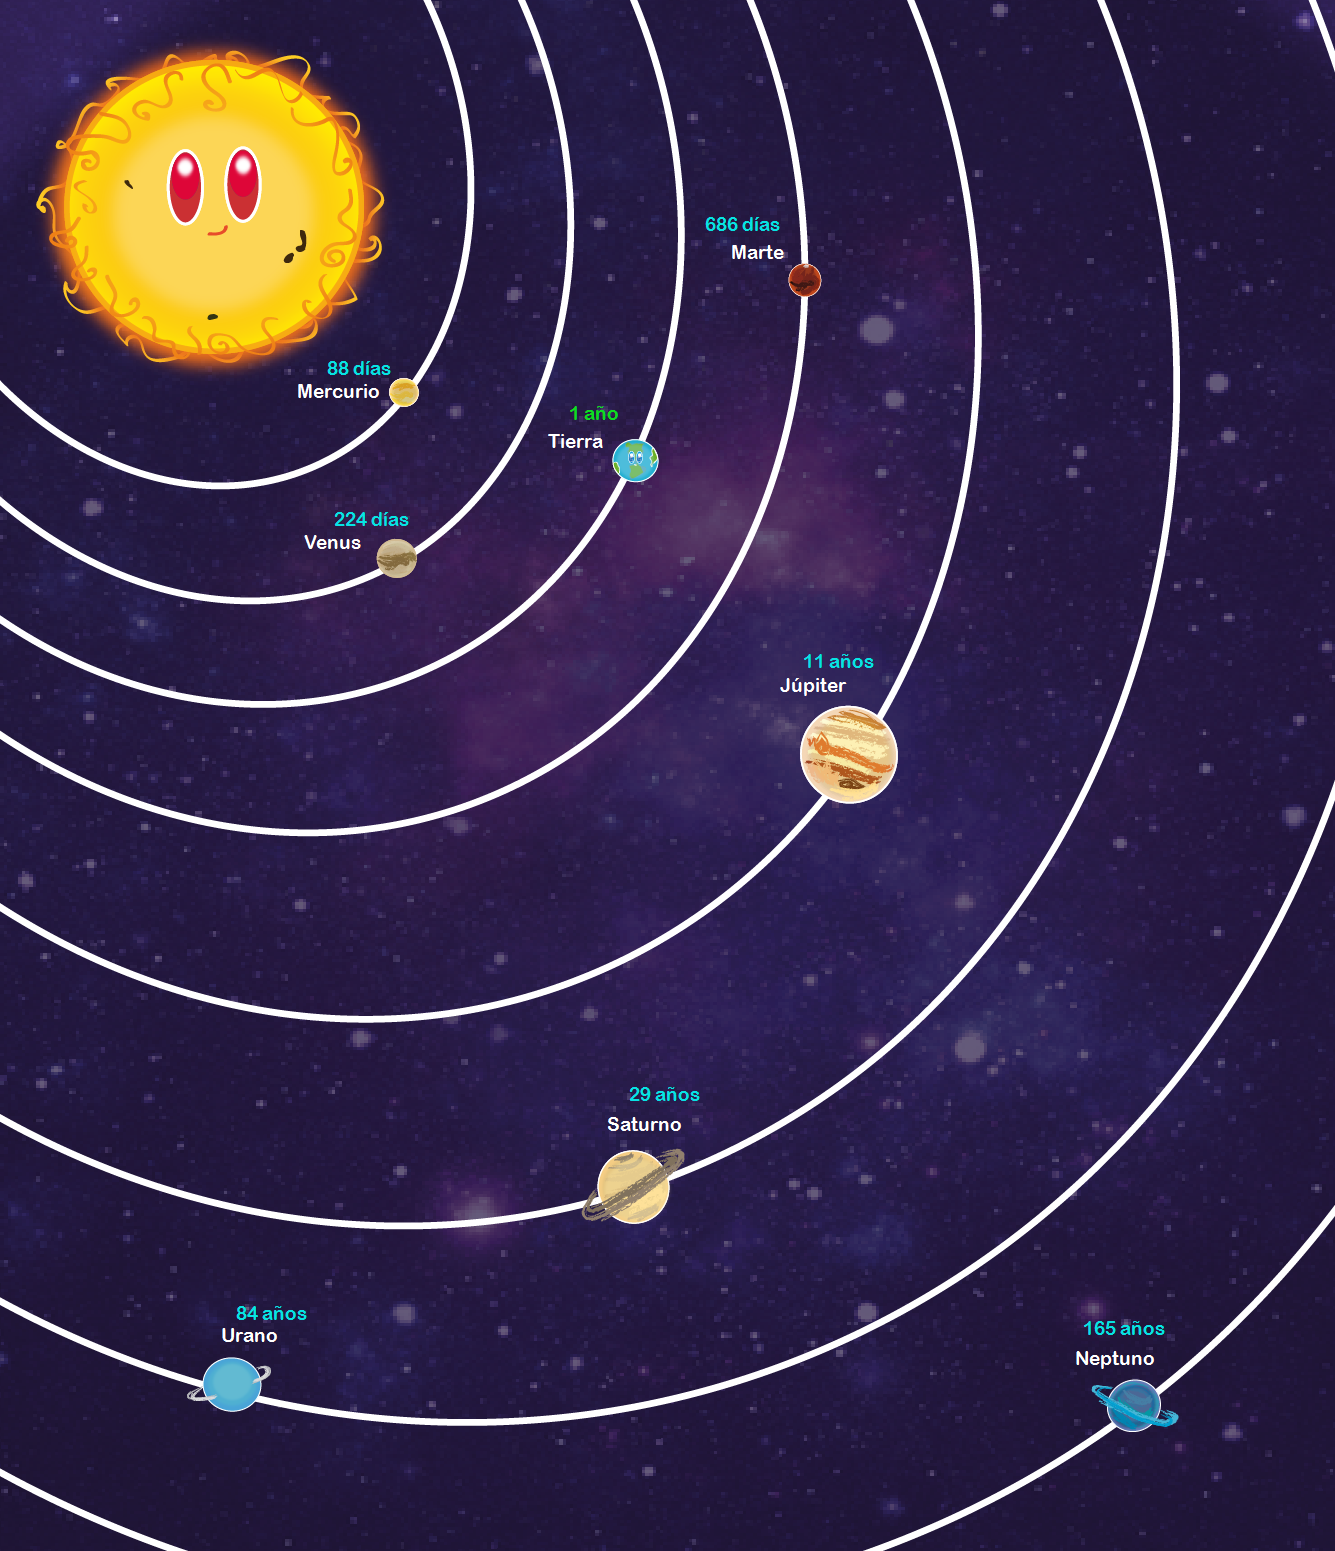 Solar system planets with names in hindi pics about space wholelaw bhavanajagat ccuart Image collections